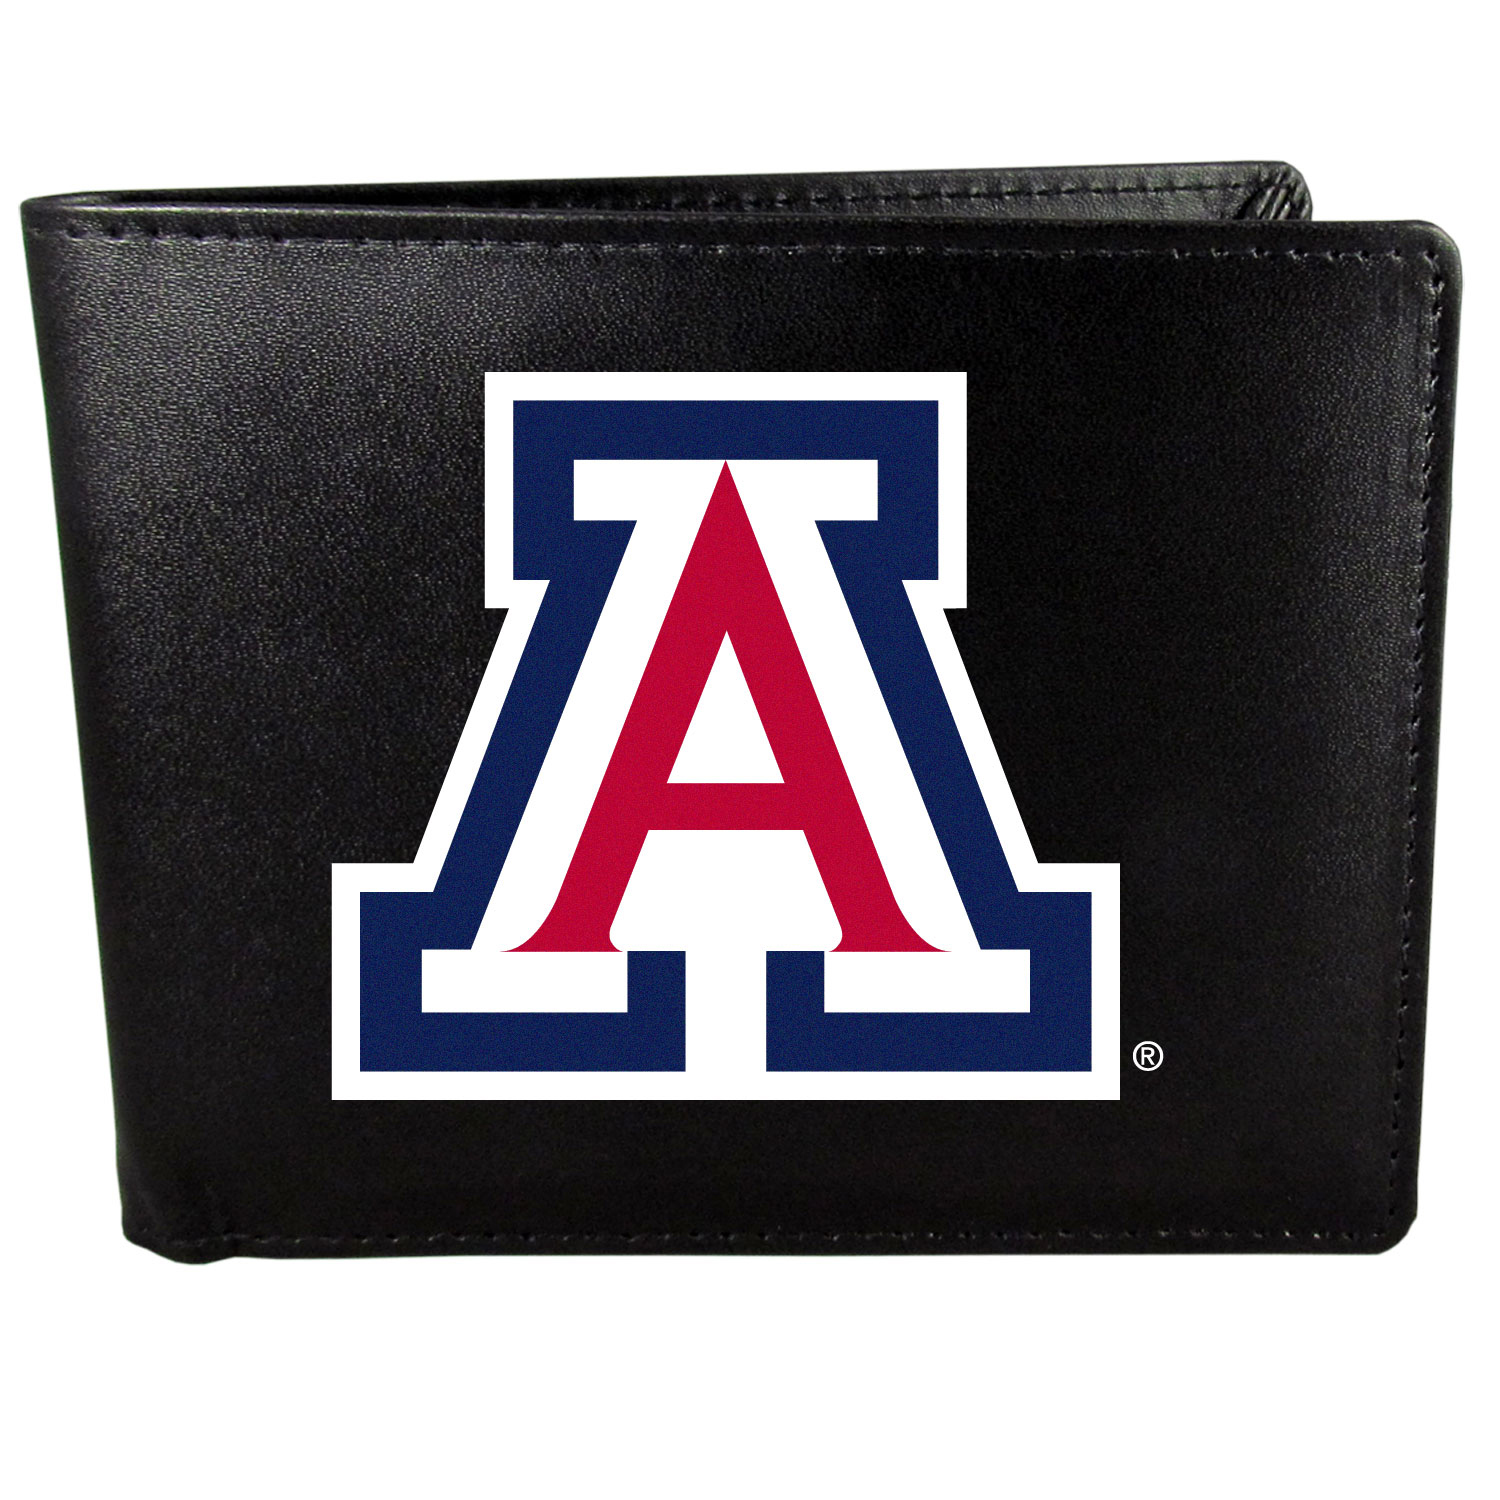 Arizona Wildcats Leather Bi-fold Wallet, Large Logo - Our classic fine leather bi-fold wallet is meticulously crafted with genuine leather that will age beautifully so you will have a quality wallet for years to come. The wallet opens to a large, billfold pocket and numerous credit card slots and has a convenient windowed ID slot. The front of the wallet features an extra large Arizona Wildcats printed logo.